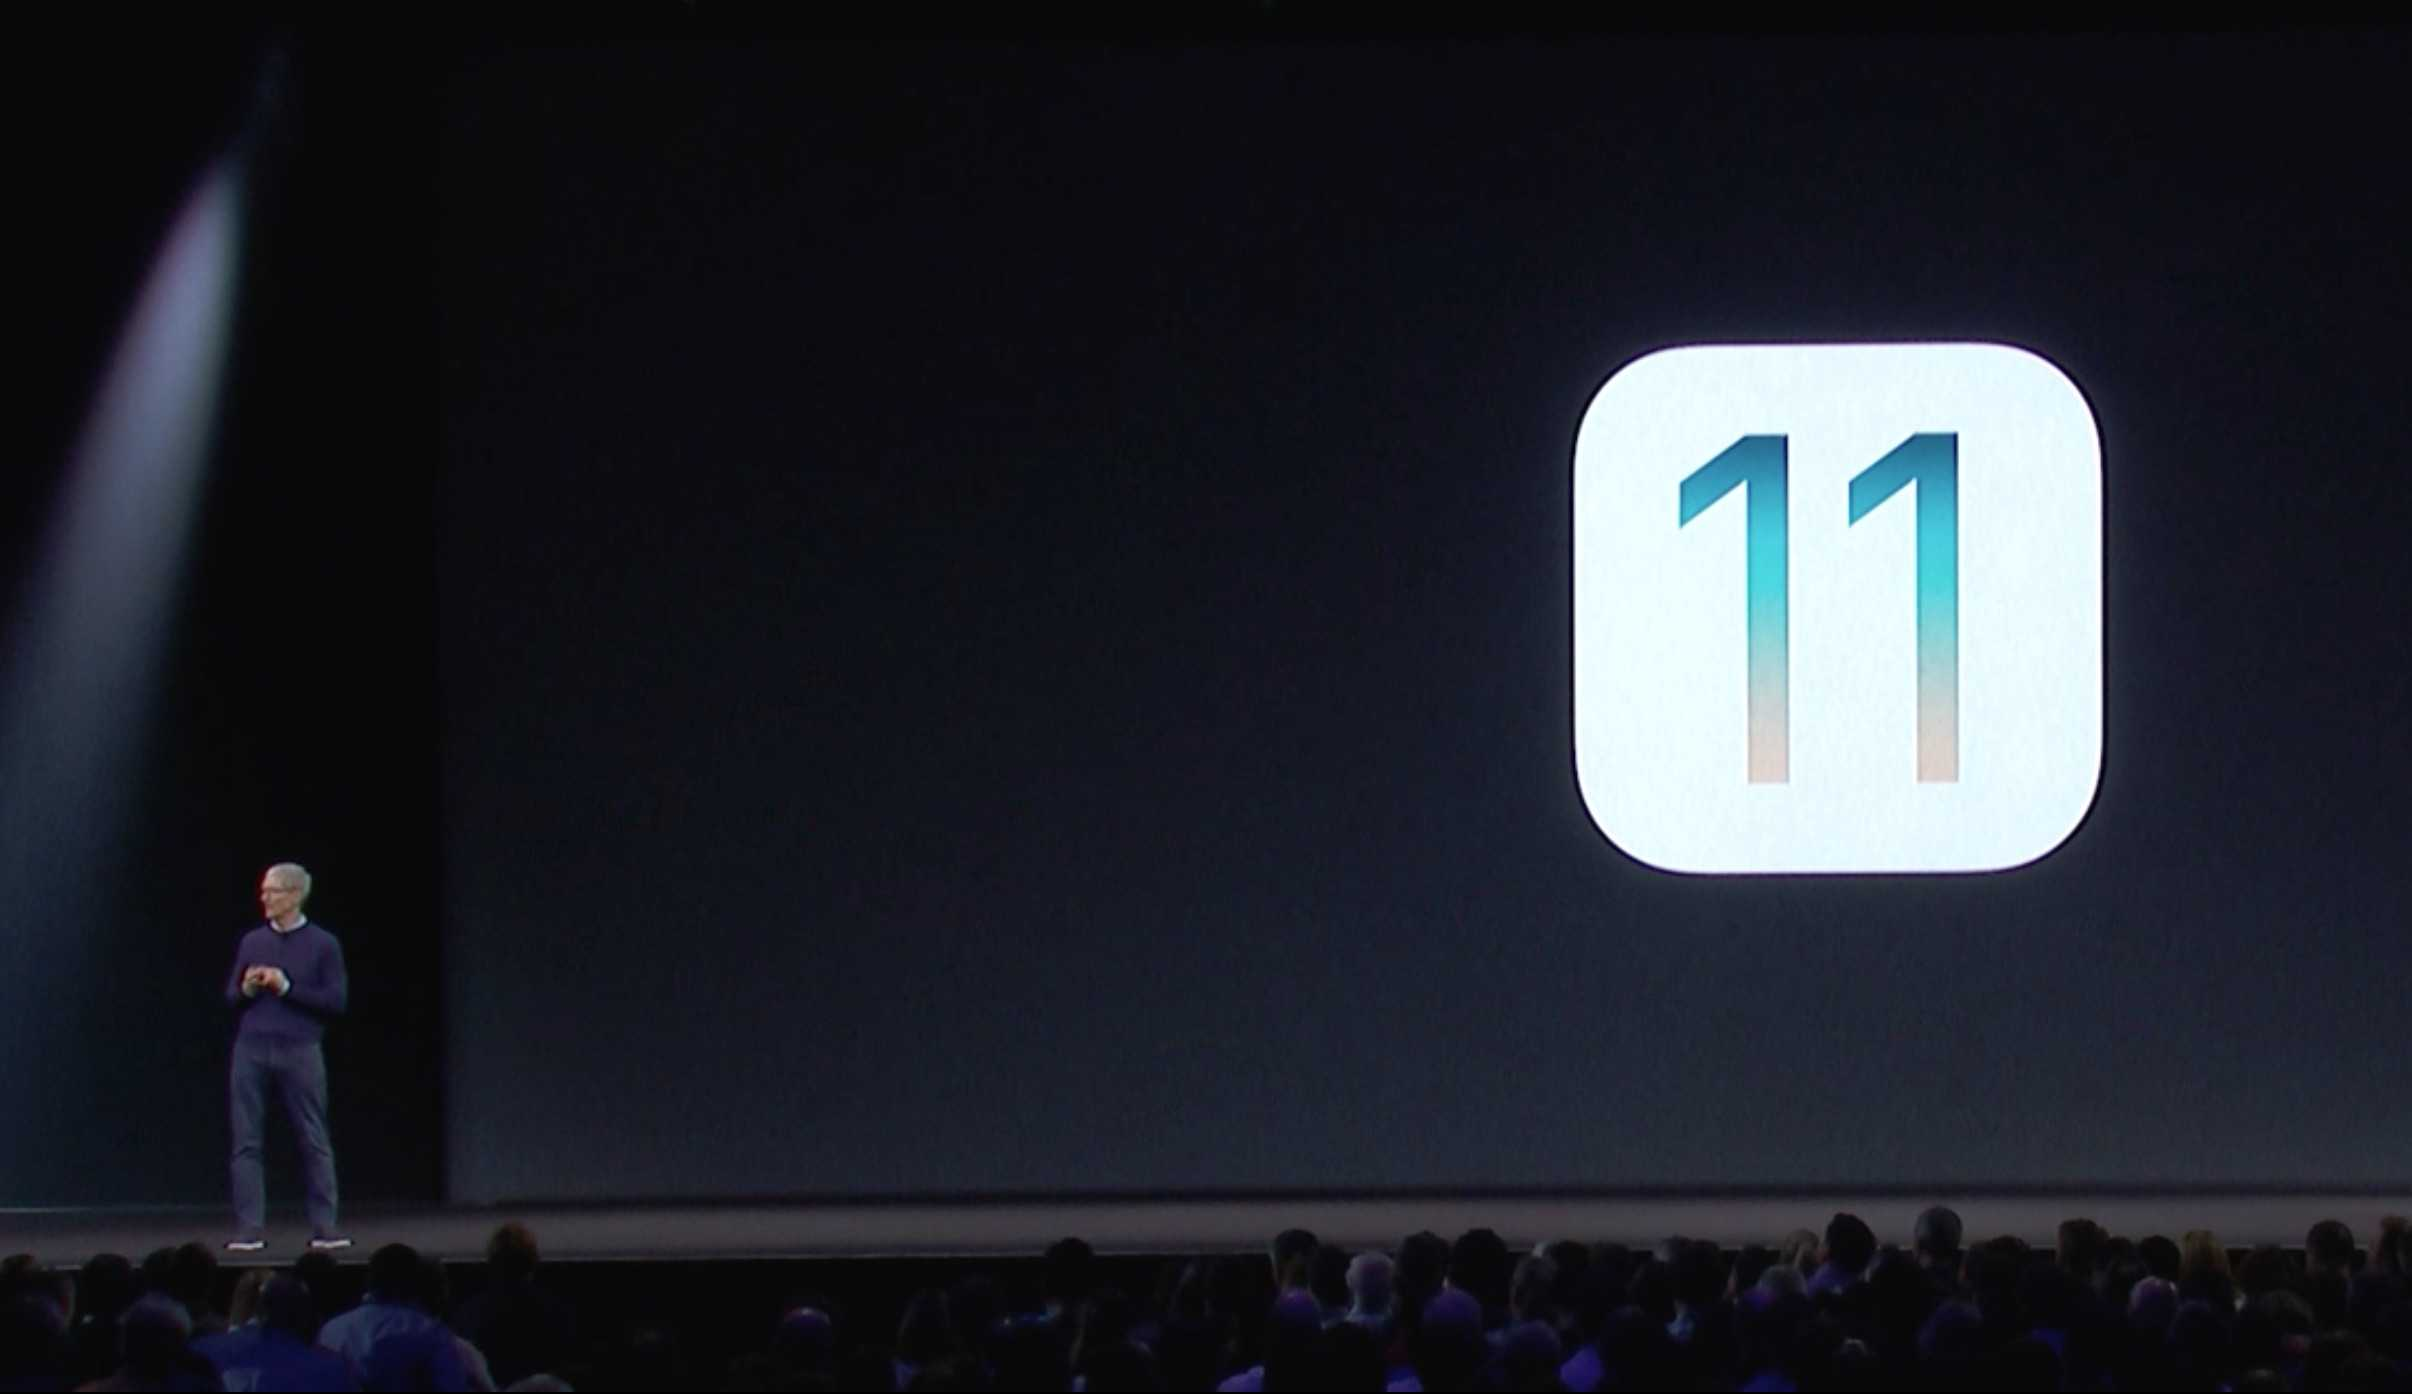 iOS 11 is Apple's biggest update in years.